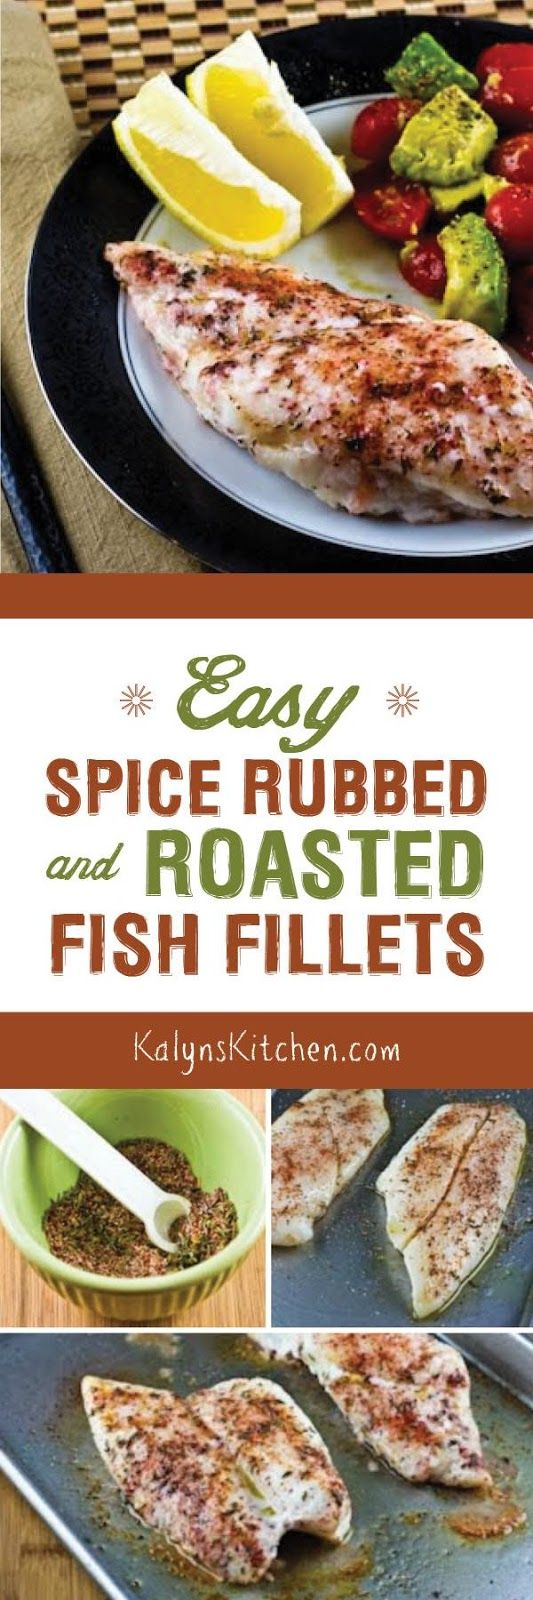 For a quick dinner that's low-carb, gluten-free, and Paleo, these Spice-Rubbed and Roasted Fish Fillets are easy and delicious! [from KalynsKitchen.com]